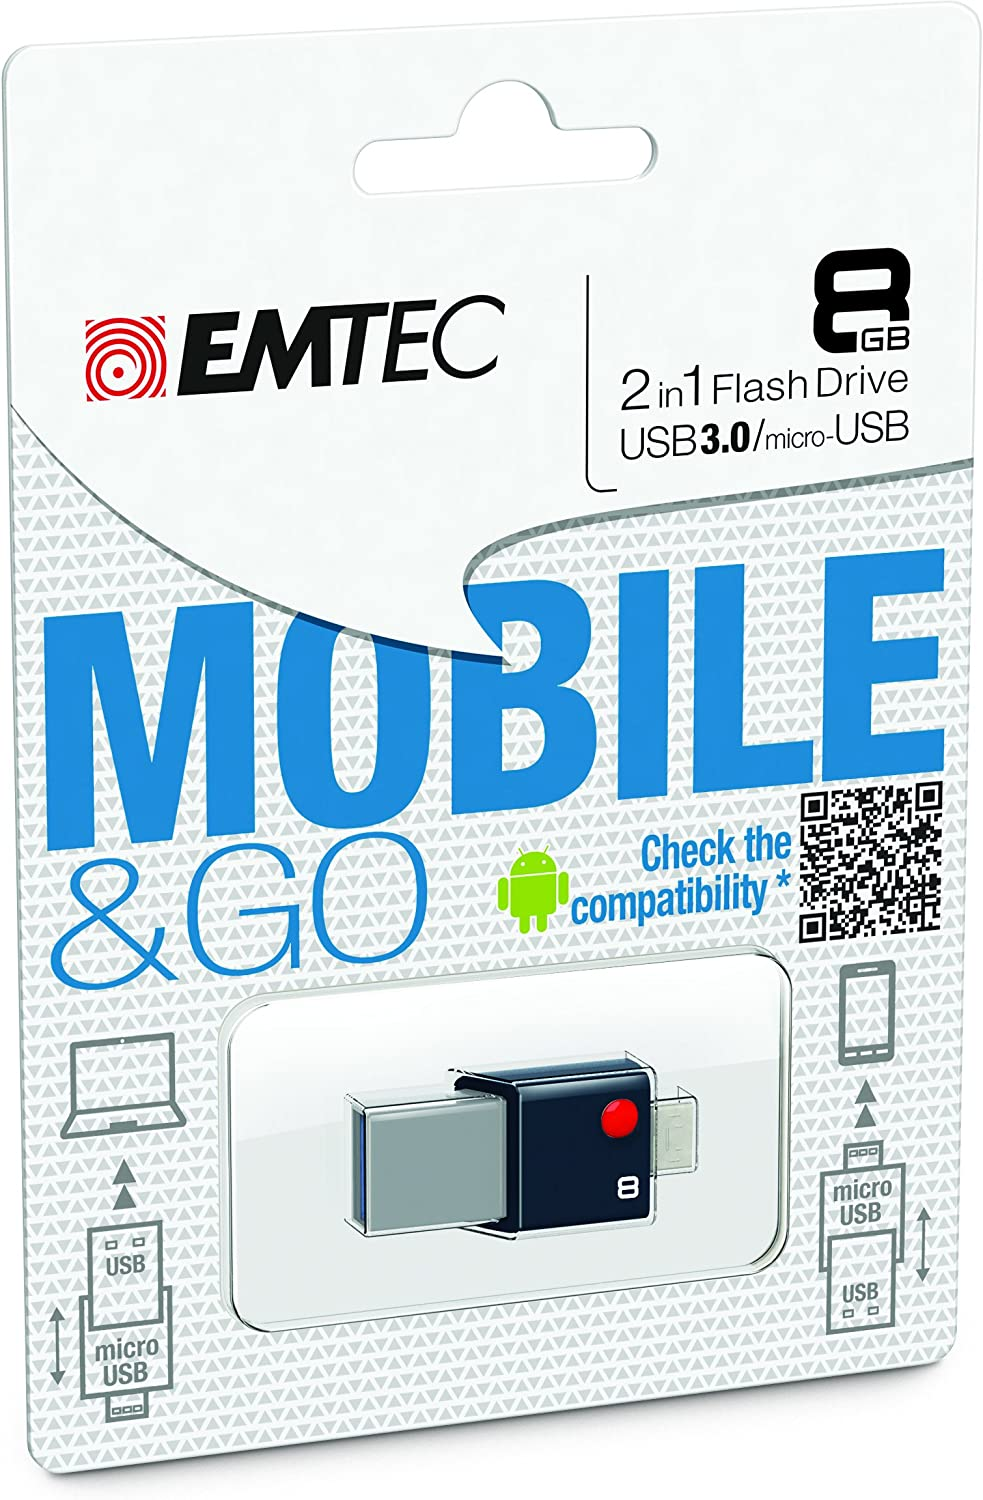 32 GB EMTEC Mobile /& Go 2 in 1 Flash Drive with USB 3.0 and Micro-USB